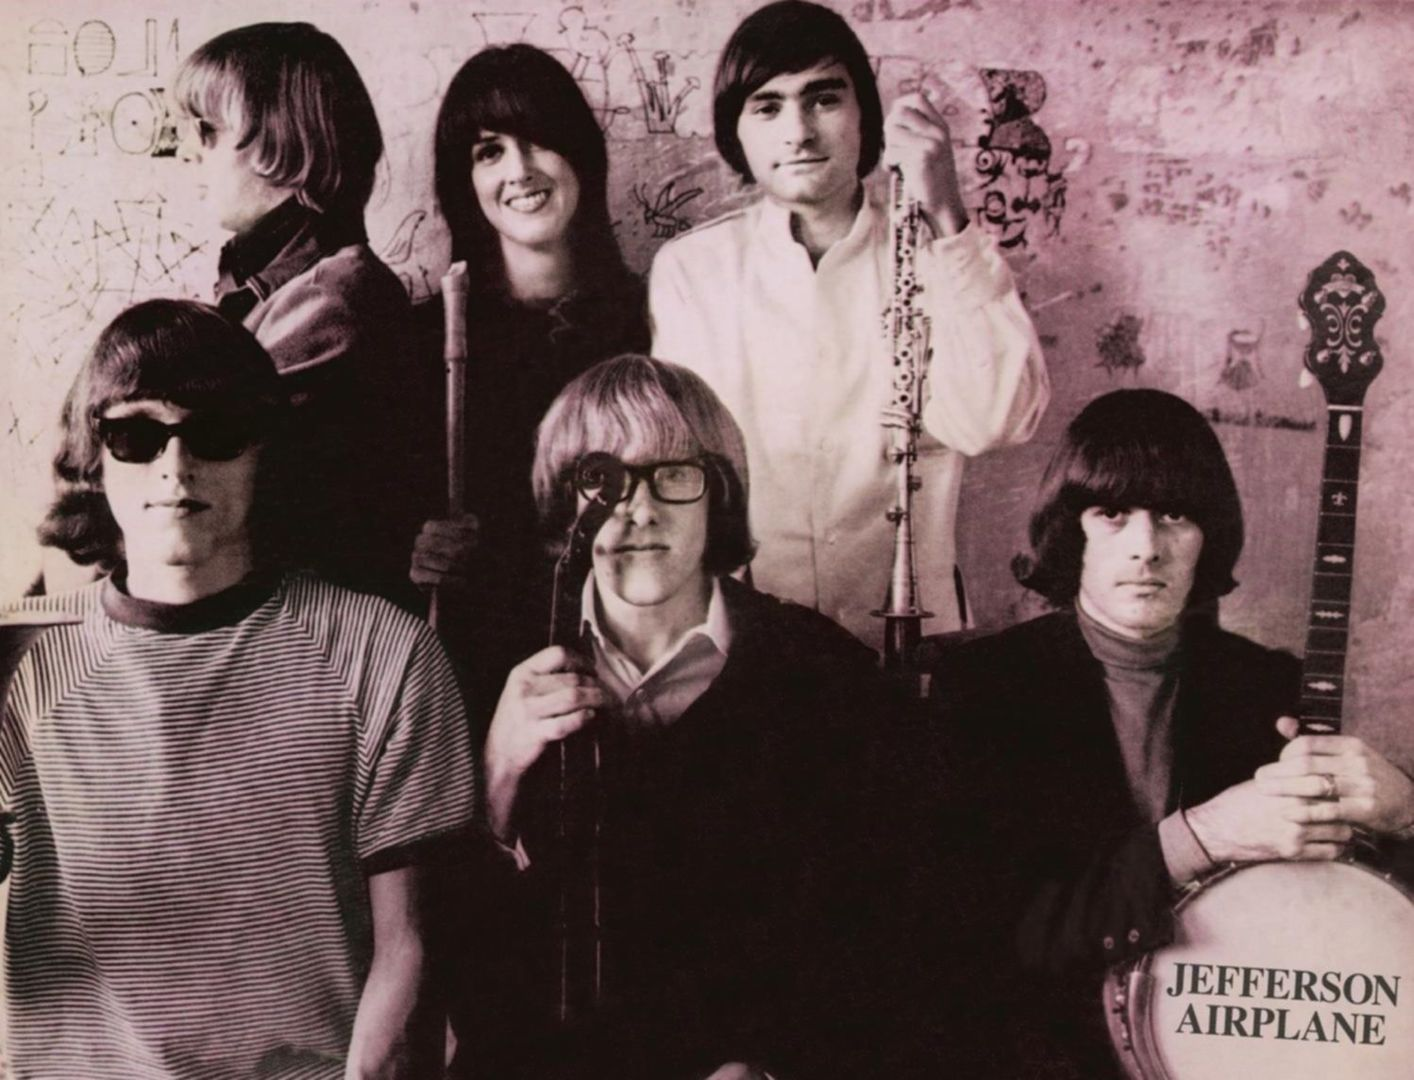 jefferson airplane cover foto